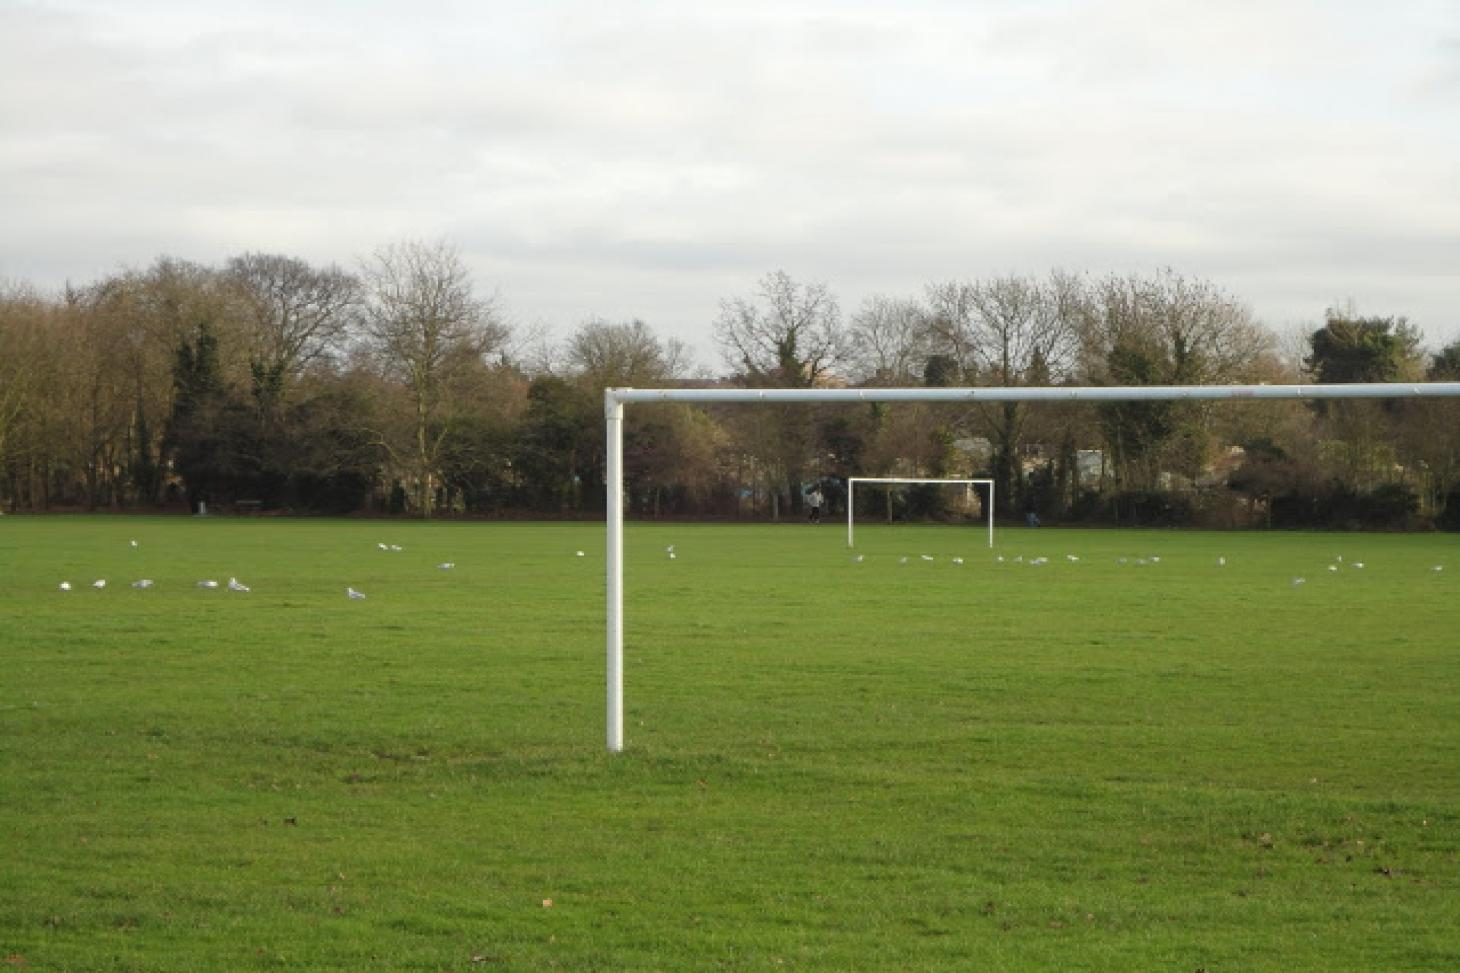 Headstone Manor Recreation Ground 5 a side   Grass football pitch